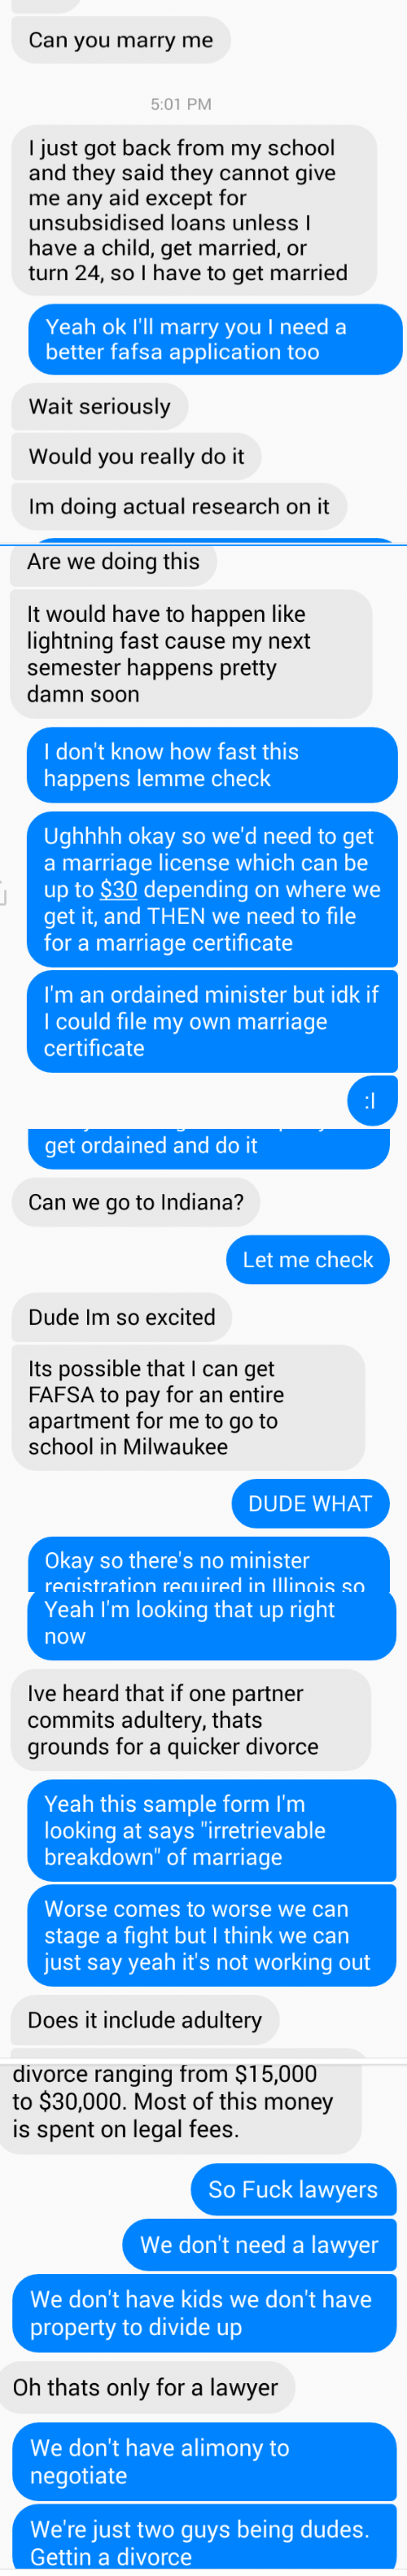 """Dude, Fafsa, and Lawyer: Can you marry me  5:01 PM  I just got back from my school  and they said they cannot give  me any aid except for  unsubsidised loans unless l  have a child, get married, or  turn 24, so I have to get married  Yeah ok I'll marry you I need a  better fafsa application too  Wait seriously  Would you really do it  Im doing actual research on it   Are we doing this  It would have to happen like  lightning fast cause my next  semester happens pretty  damn soon  I don't know how fast this  happens lemme check  Ughhhh okay so we'd need to get  a marriage license which can be  up to $30 depending on where we  get it, and THEN we need to file  for a marriage certificate  I'm an ordained minister but idk if  I could file my own marriage  certificate   get ordained and do it  Can we go to Indiana?  Let me check  Dude Im so excited  Its possible that I can get  FAFSA to pay for an entire  apartment for me to go to  school in Milwaukee  DUDE WHAT  Okay so there's no minister  registration required in lllinois so   Yeah I'm looking that up right  now  Ive heard that if one partner  commits adultery, thats  grounds for a quicker divorce  Yeah this sample form I'm  looking at says """"irretrievable  breakdown"""" of marriage  Worse comes to worse we can  stage a fight but I think we can  just say yeah it's not working out  Does it include adultery   divorce ranging from $15,000  to $30,000. Most of this money  is spent on legal fees.  So Fuck lawyers  We don't need a lawyer  We don't have kids we don't have  property to divide up  Oh thats only for a lawyer  We don't have alimony to  negotiate  We're just two guys being dudes.  Gettin a divorce"""